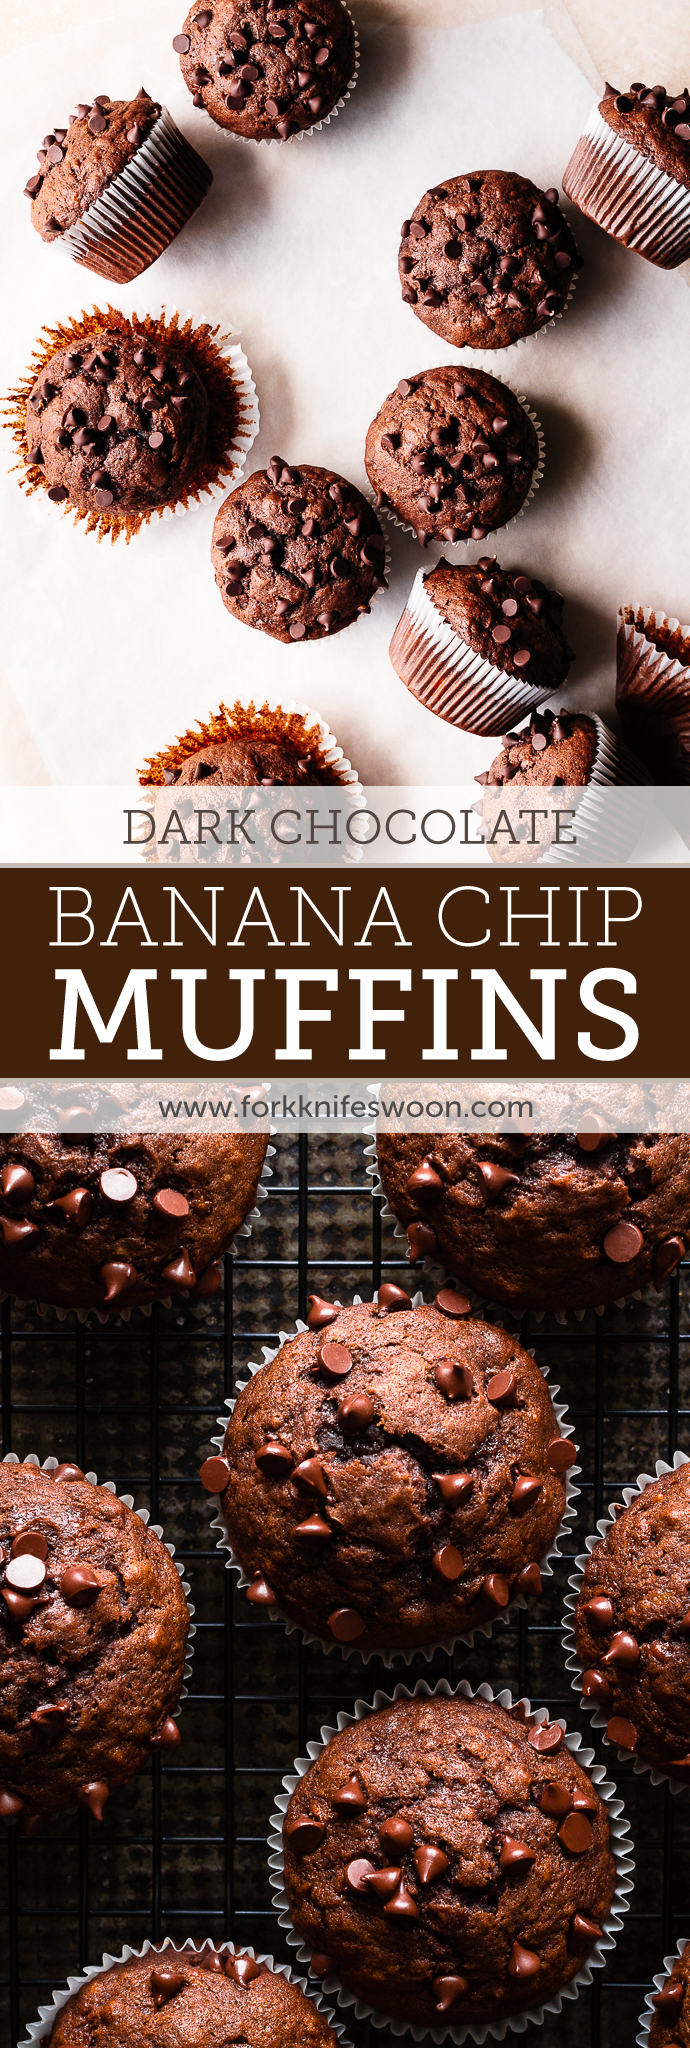 One Bowl Dark Chocolate Banana Muffins   Fork Knife Swoon @forkknifeswoon